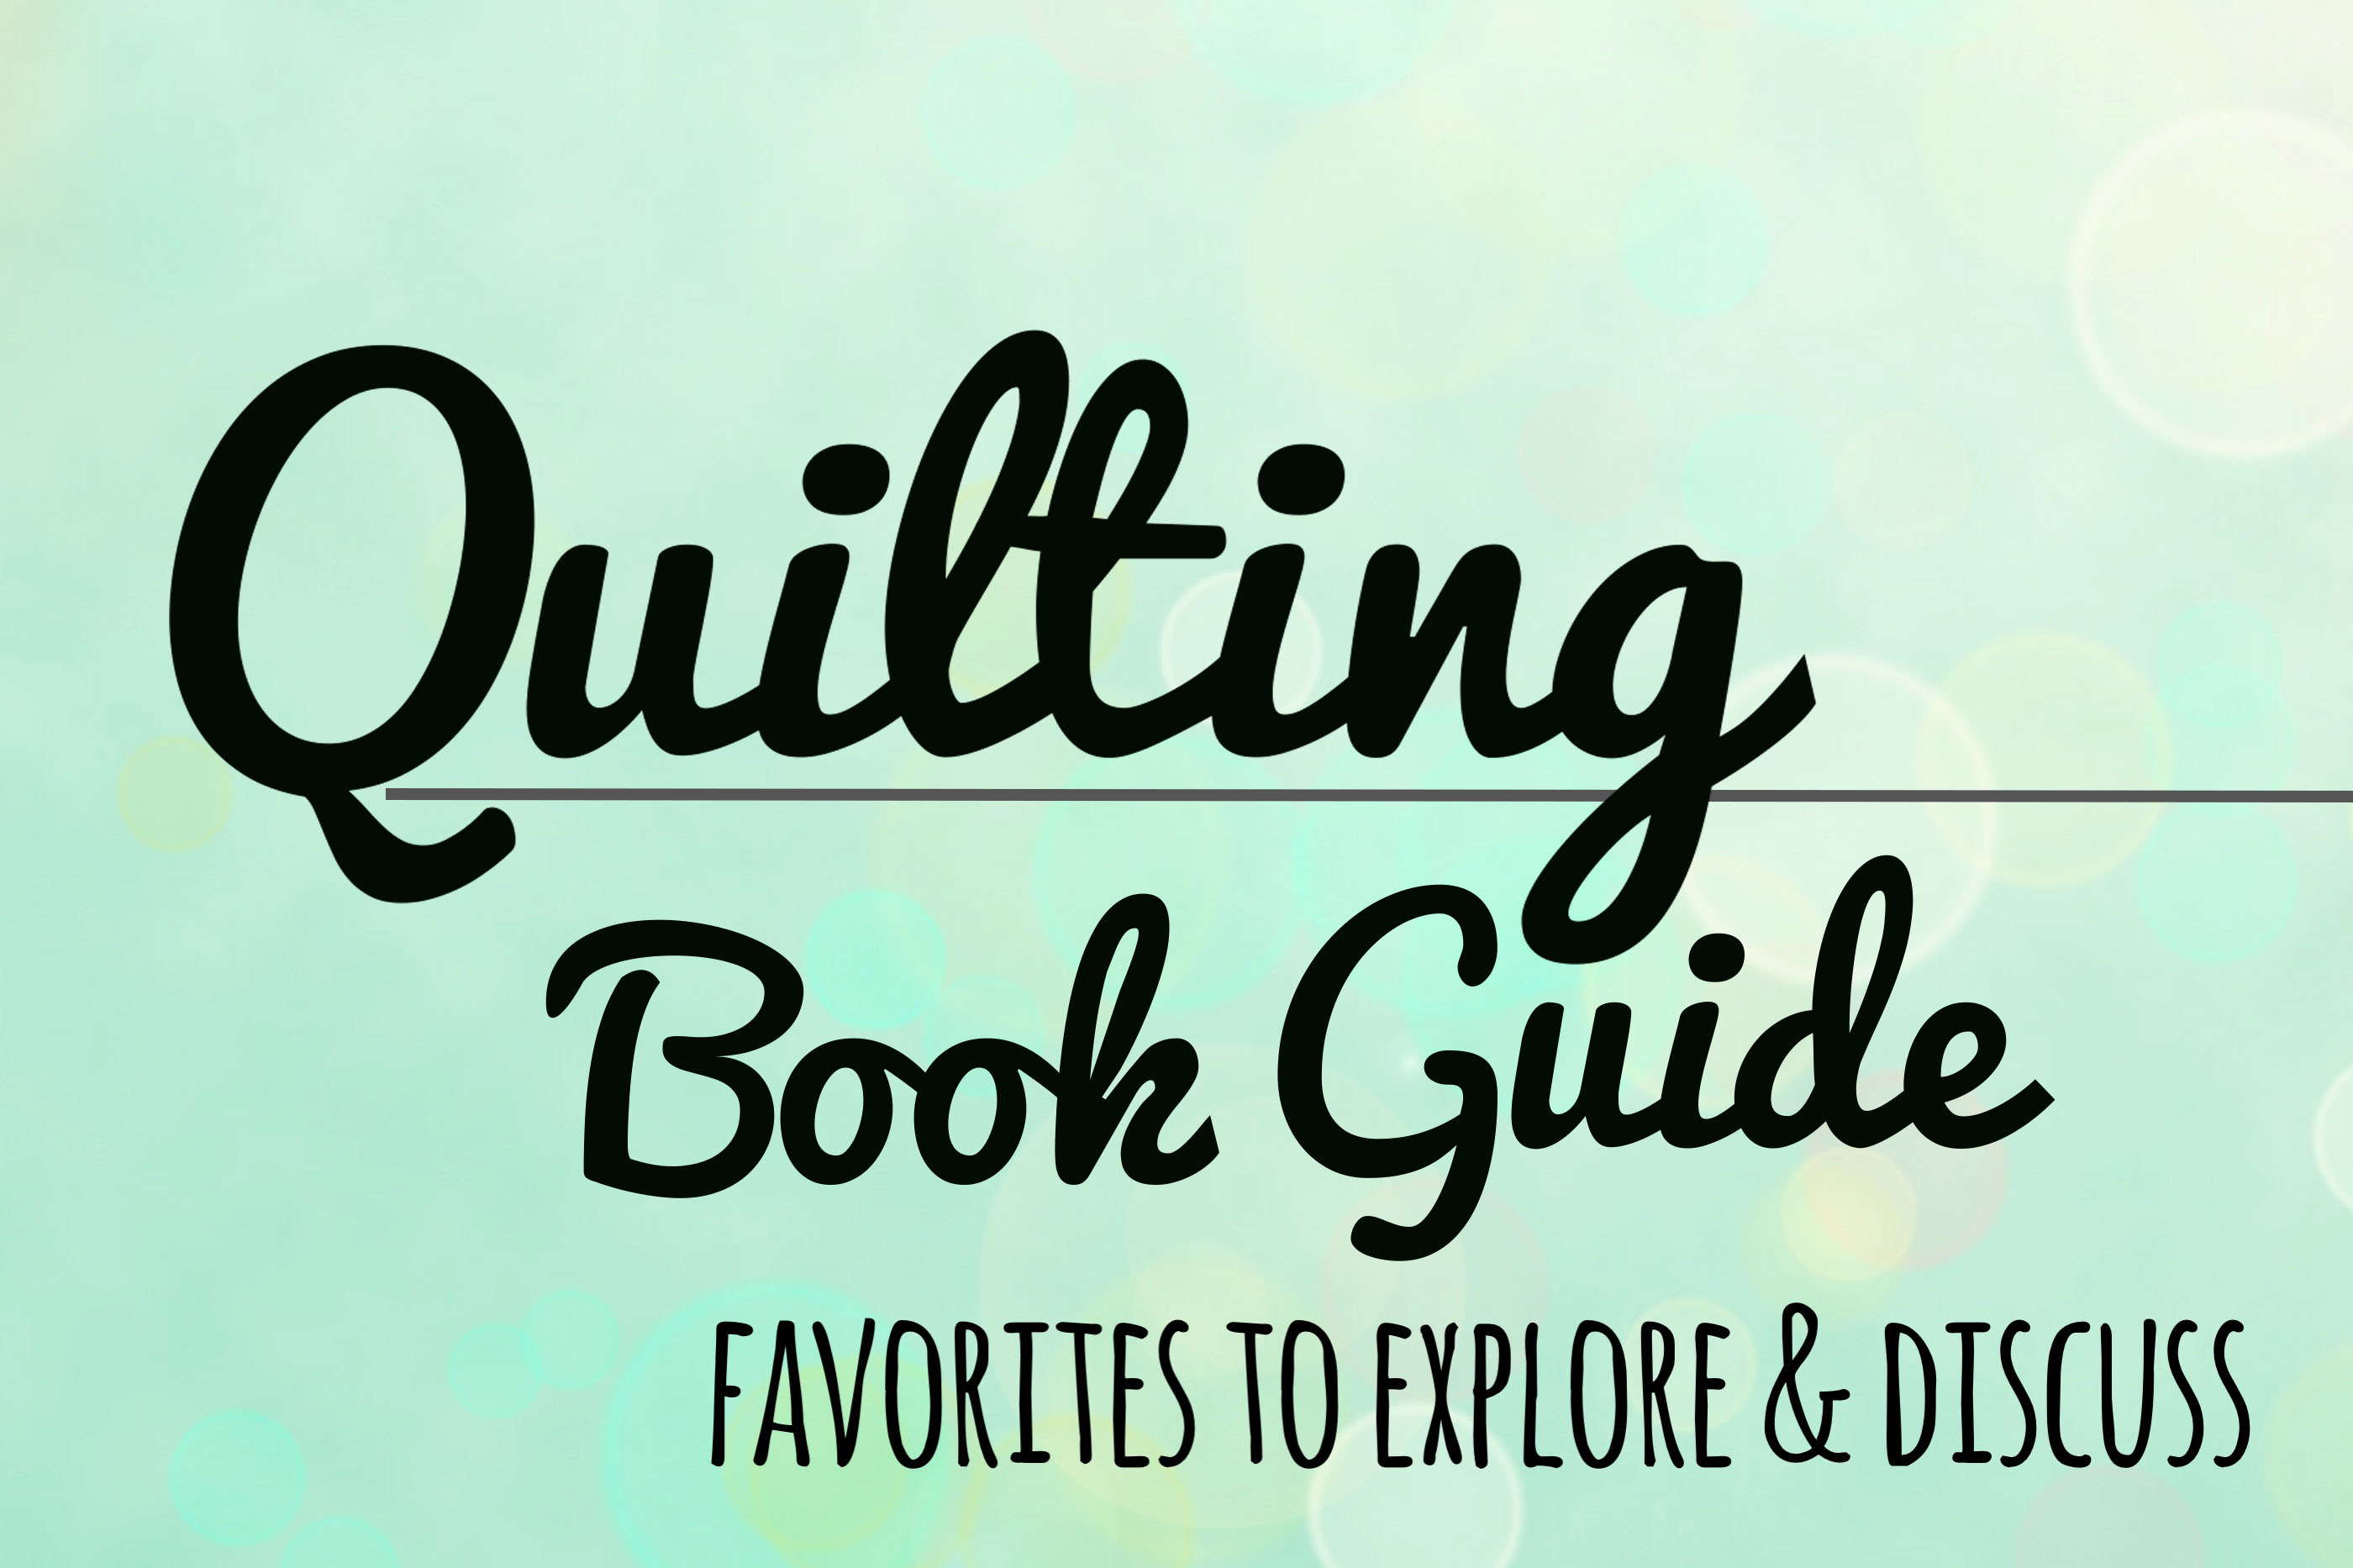 Link to Rossie's quilting book guide